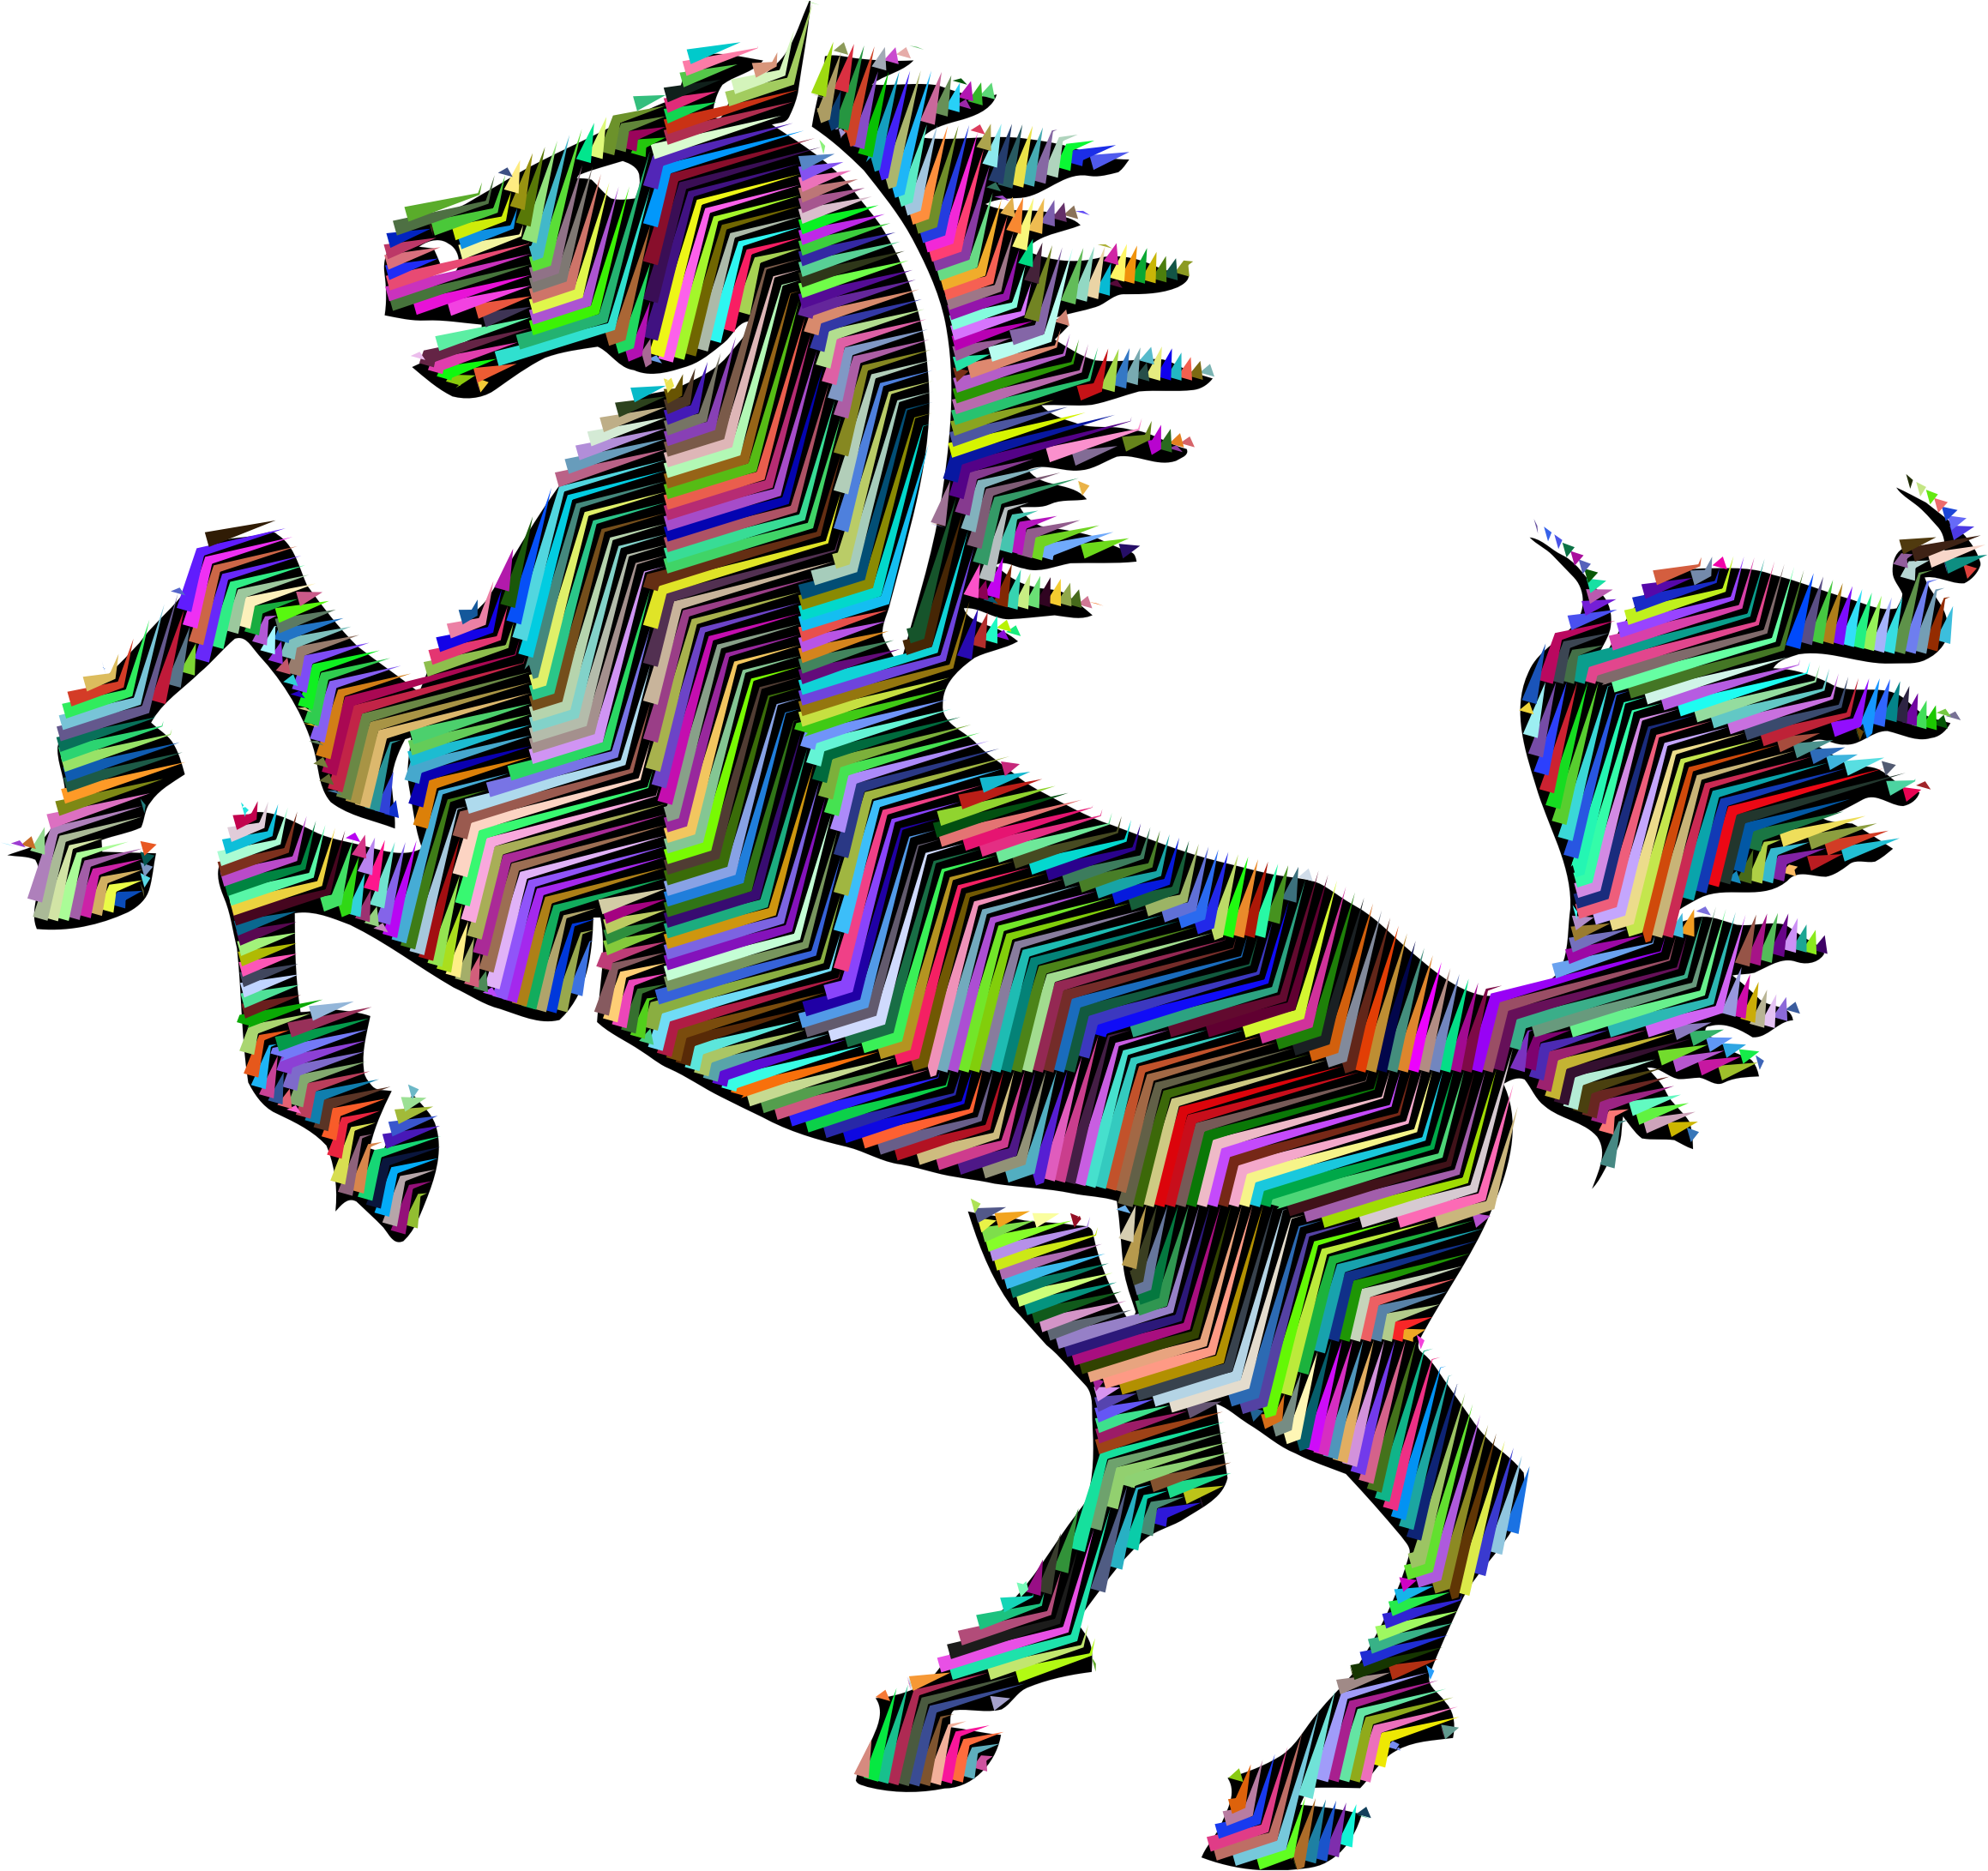 Prismatic Horse Silhouette Abstract Line Art With Background by GDJ